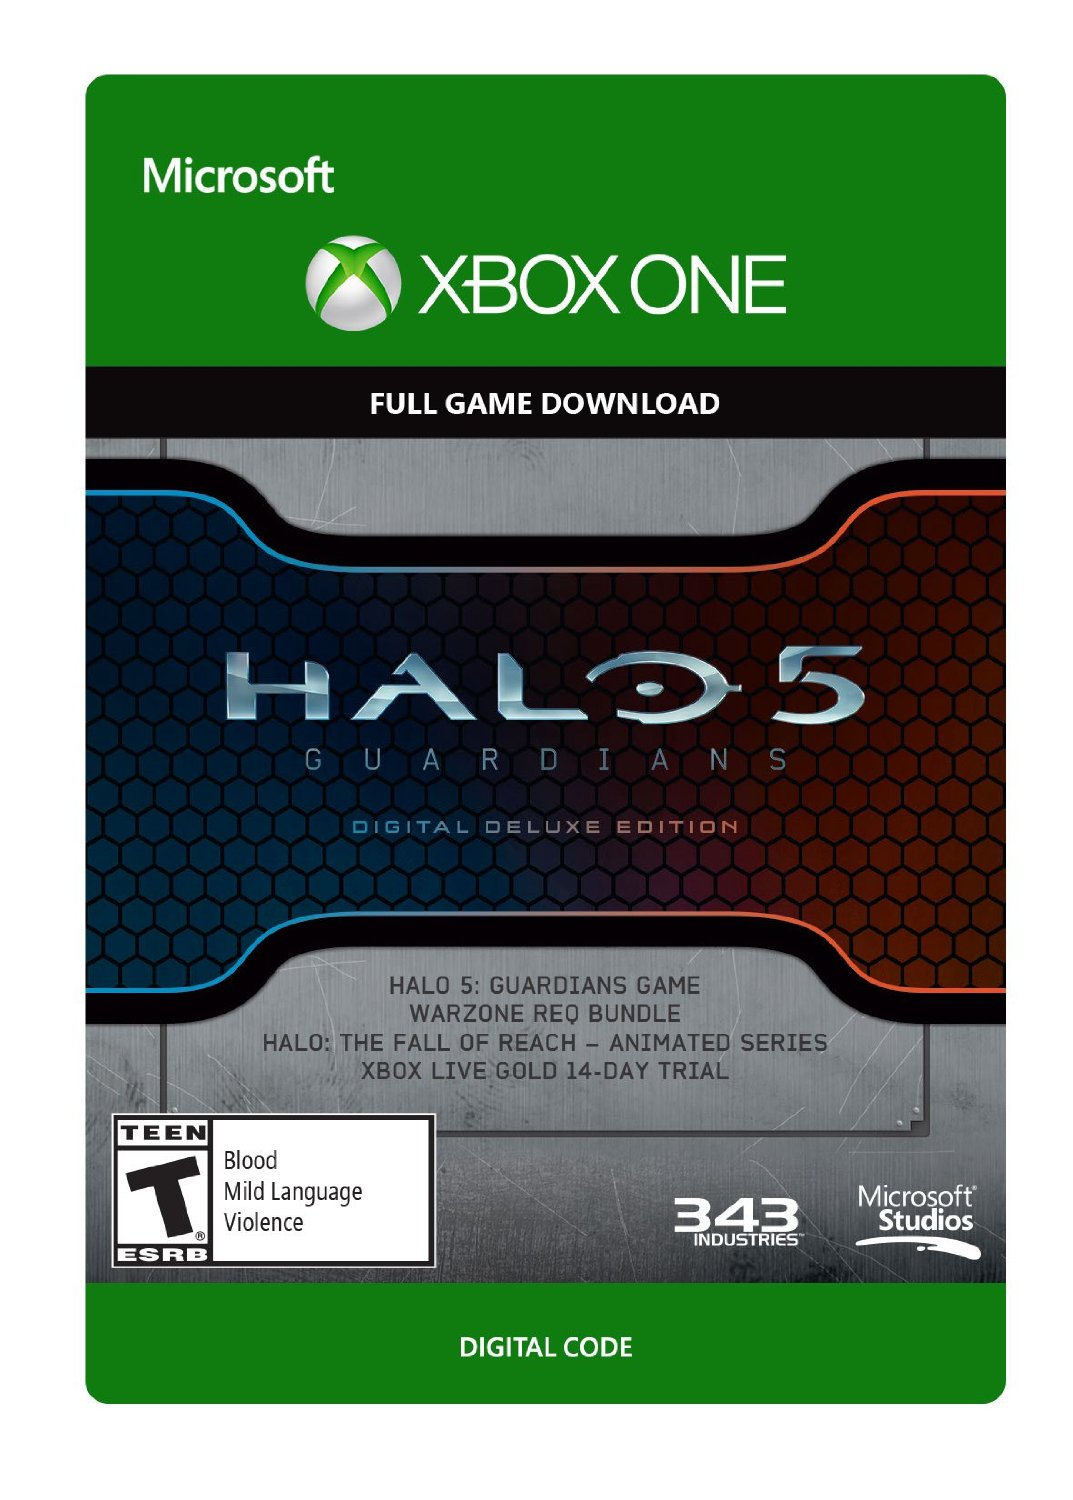 Halo 5 Guardians Digital Deluxe Edition Xbox One